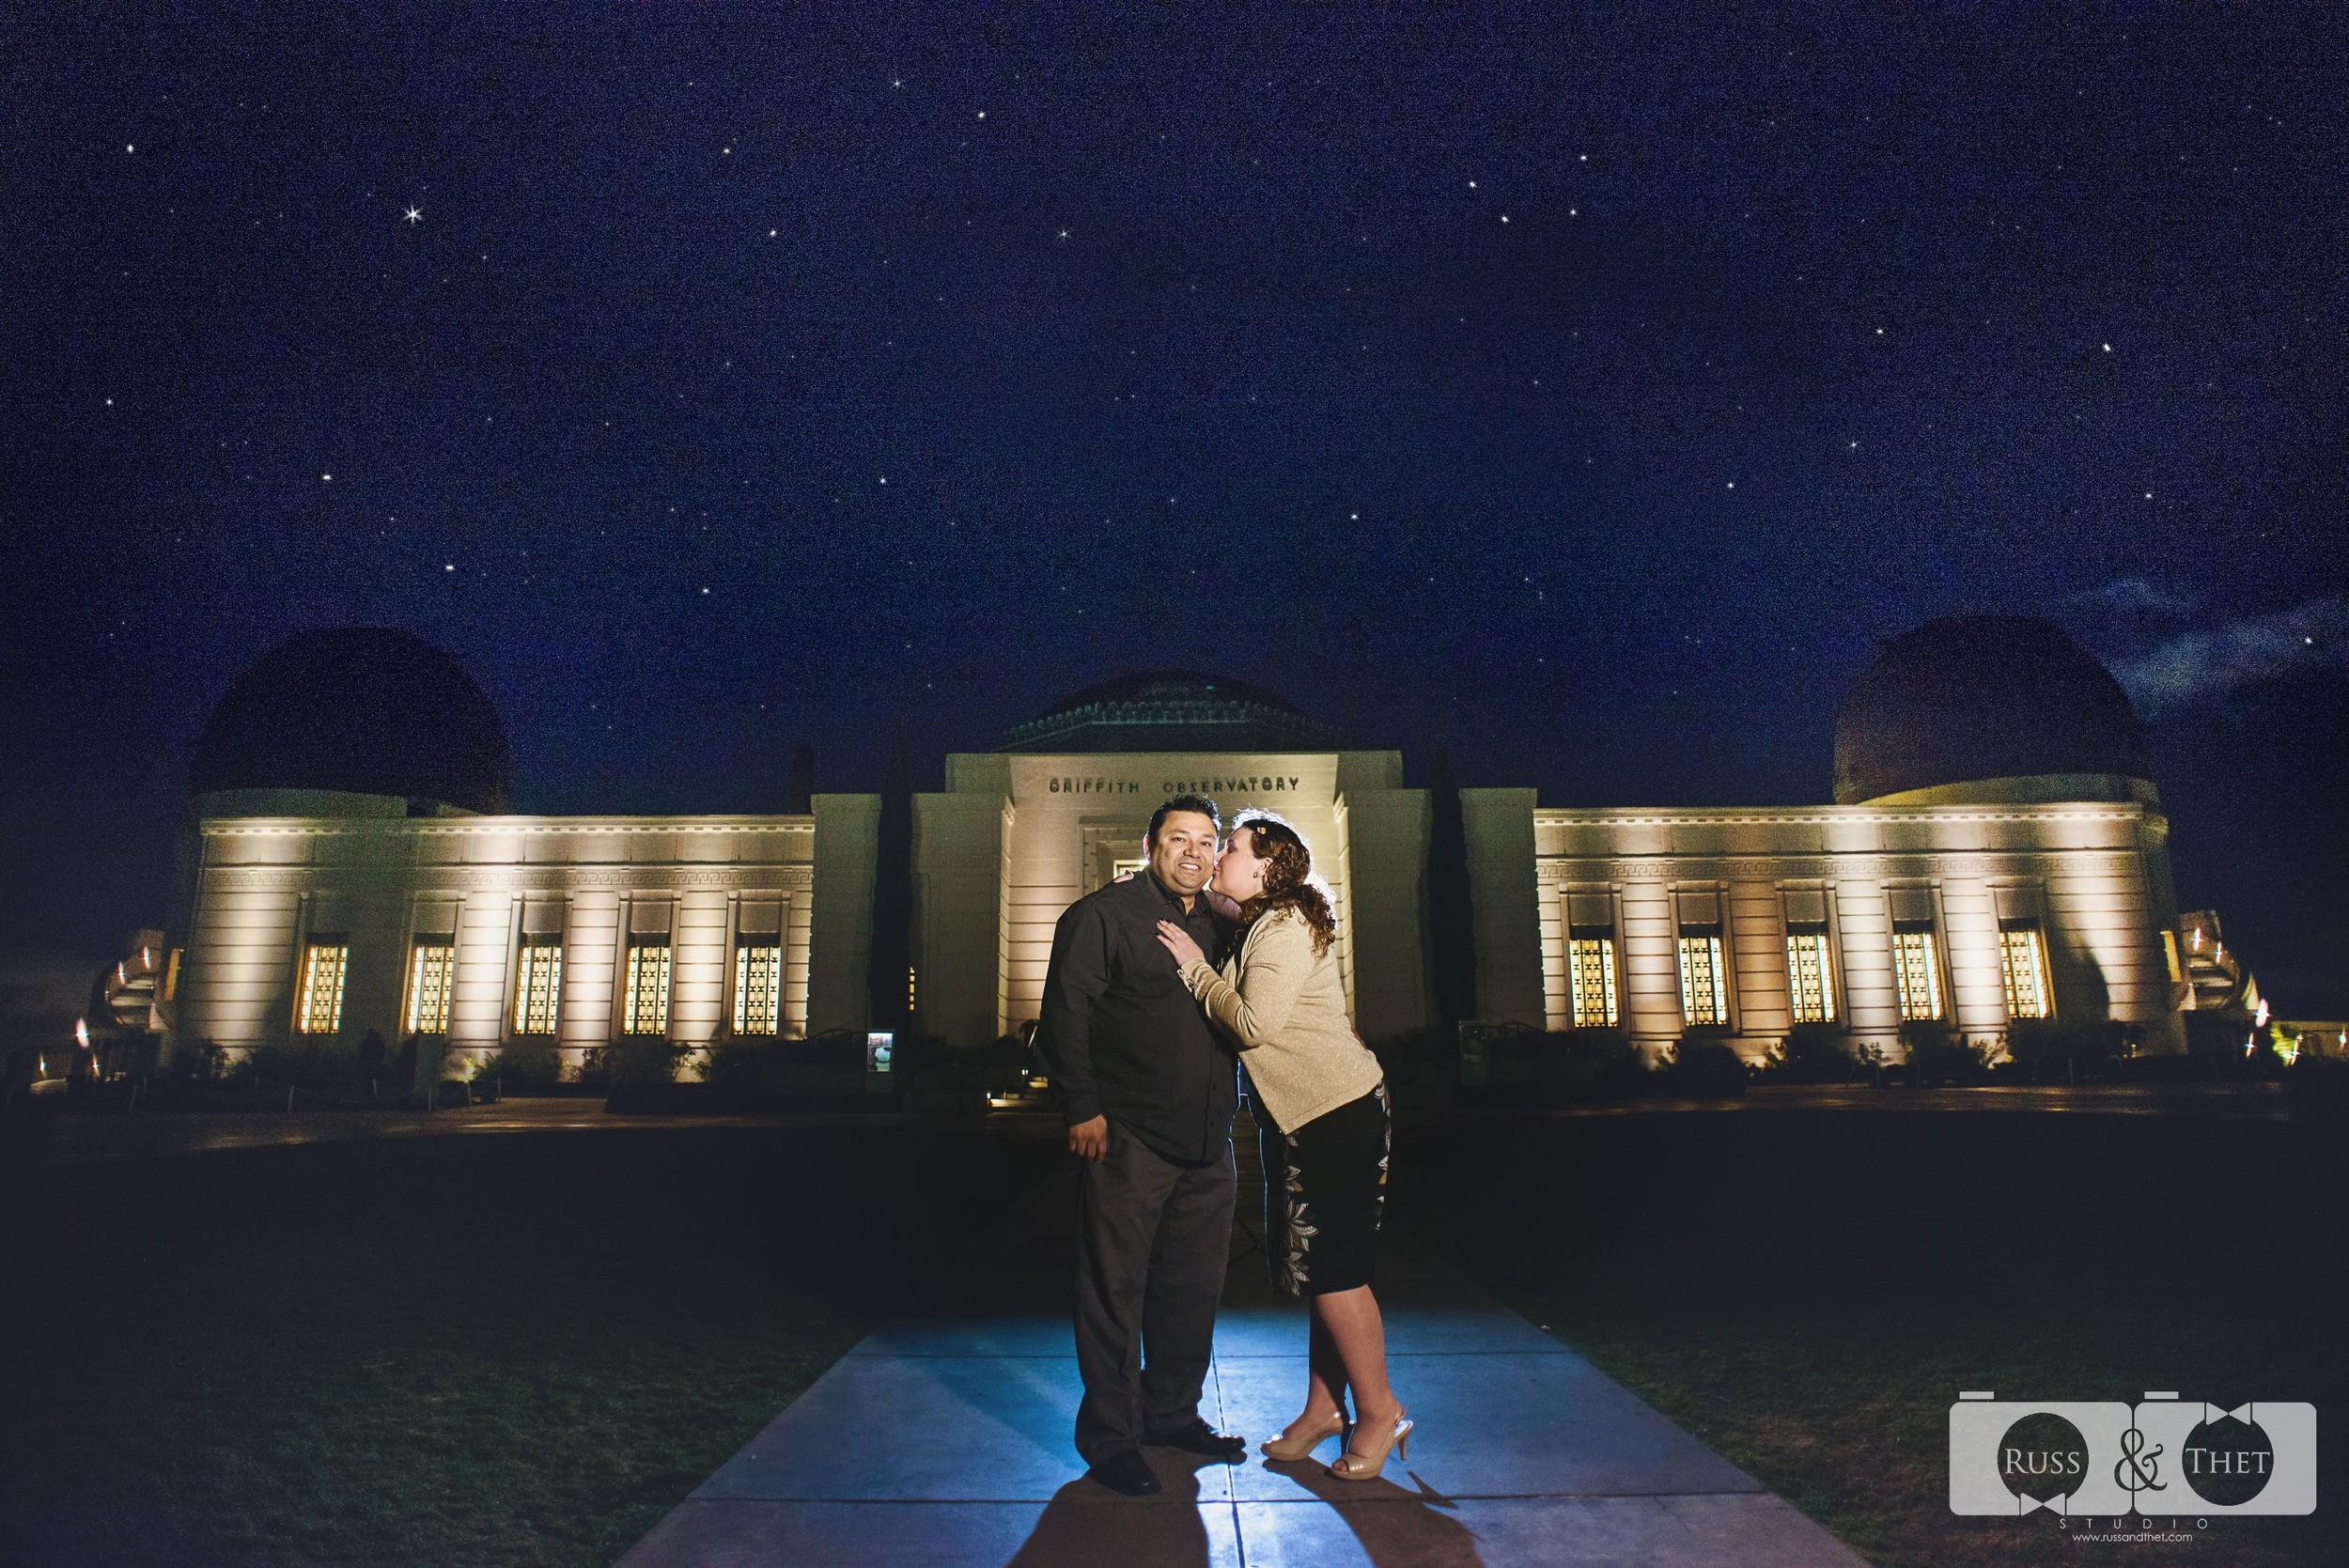 Hector&Vanessa-Griffith-Conservatory-Engagement-Photographer (10).jpg